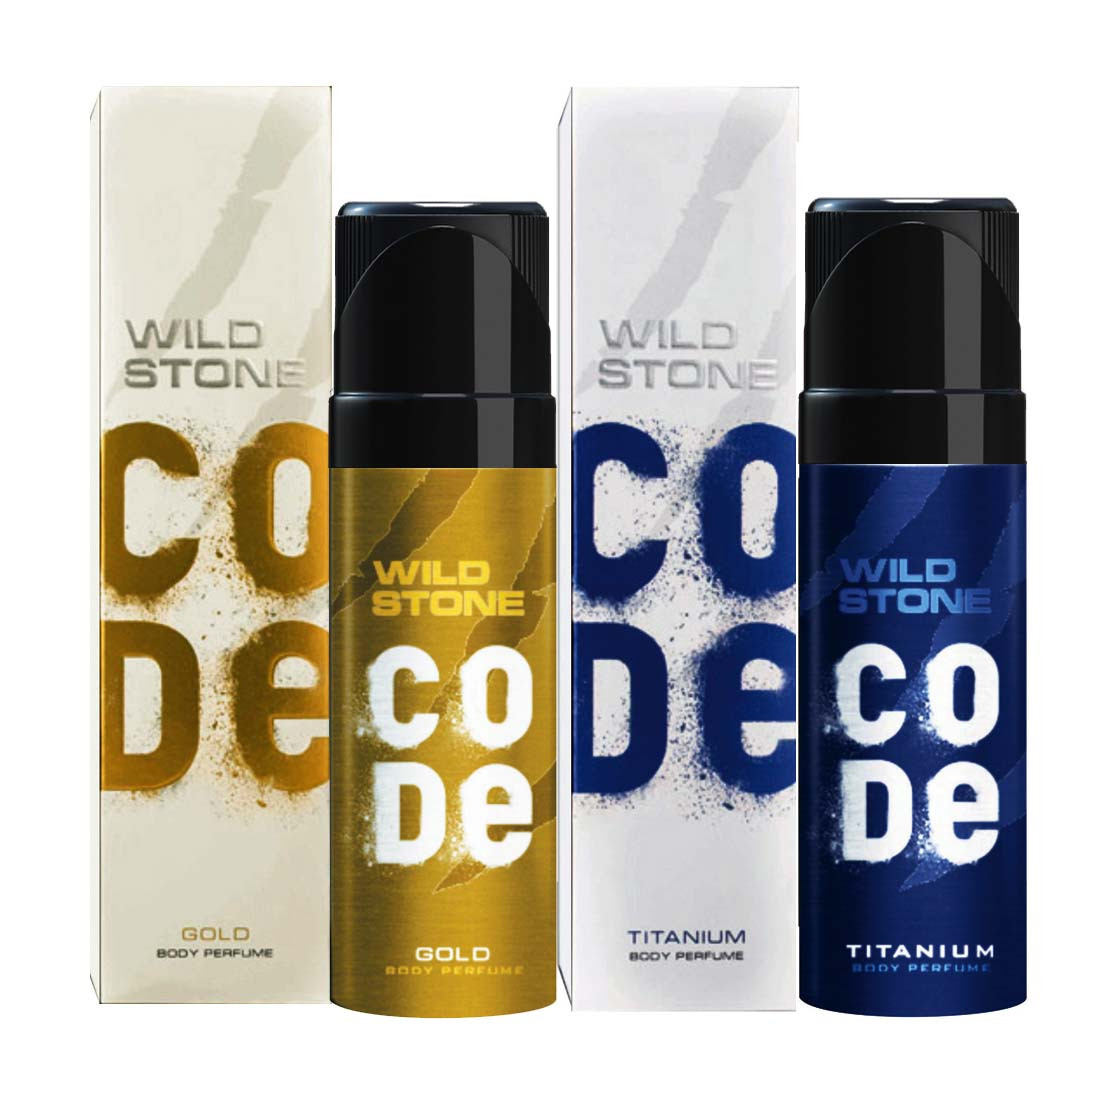 Wild Stone Code Gold And Titanium (Pack Of 2) No Gas Deo